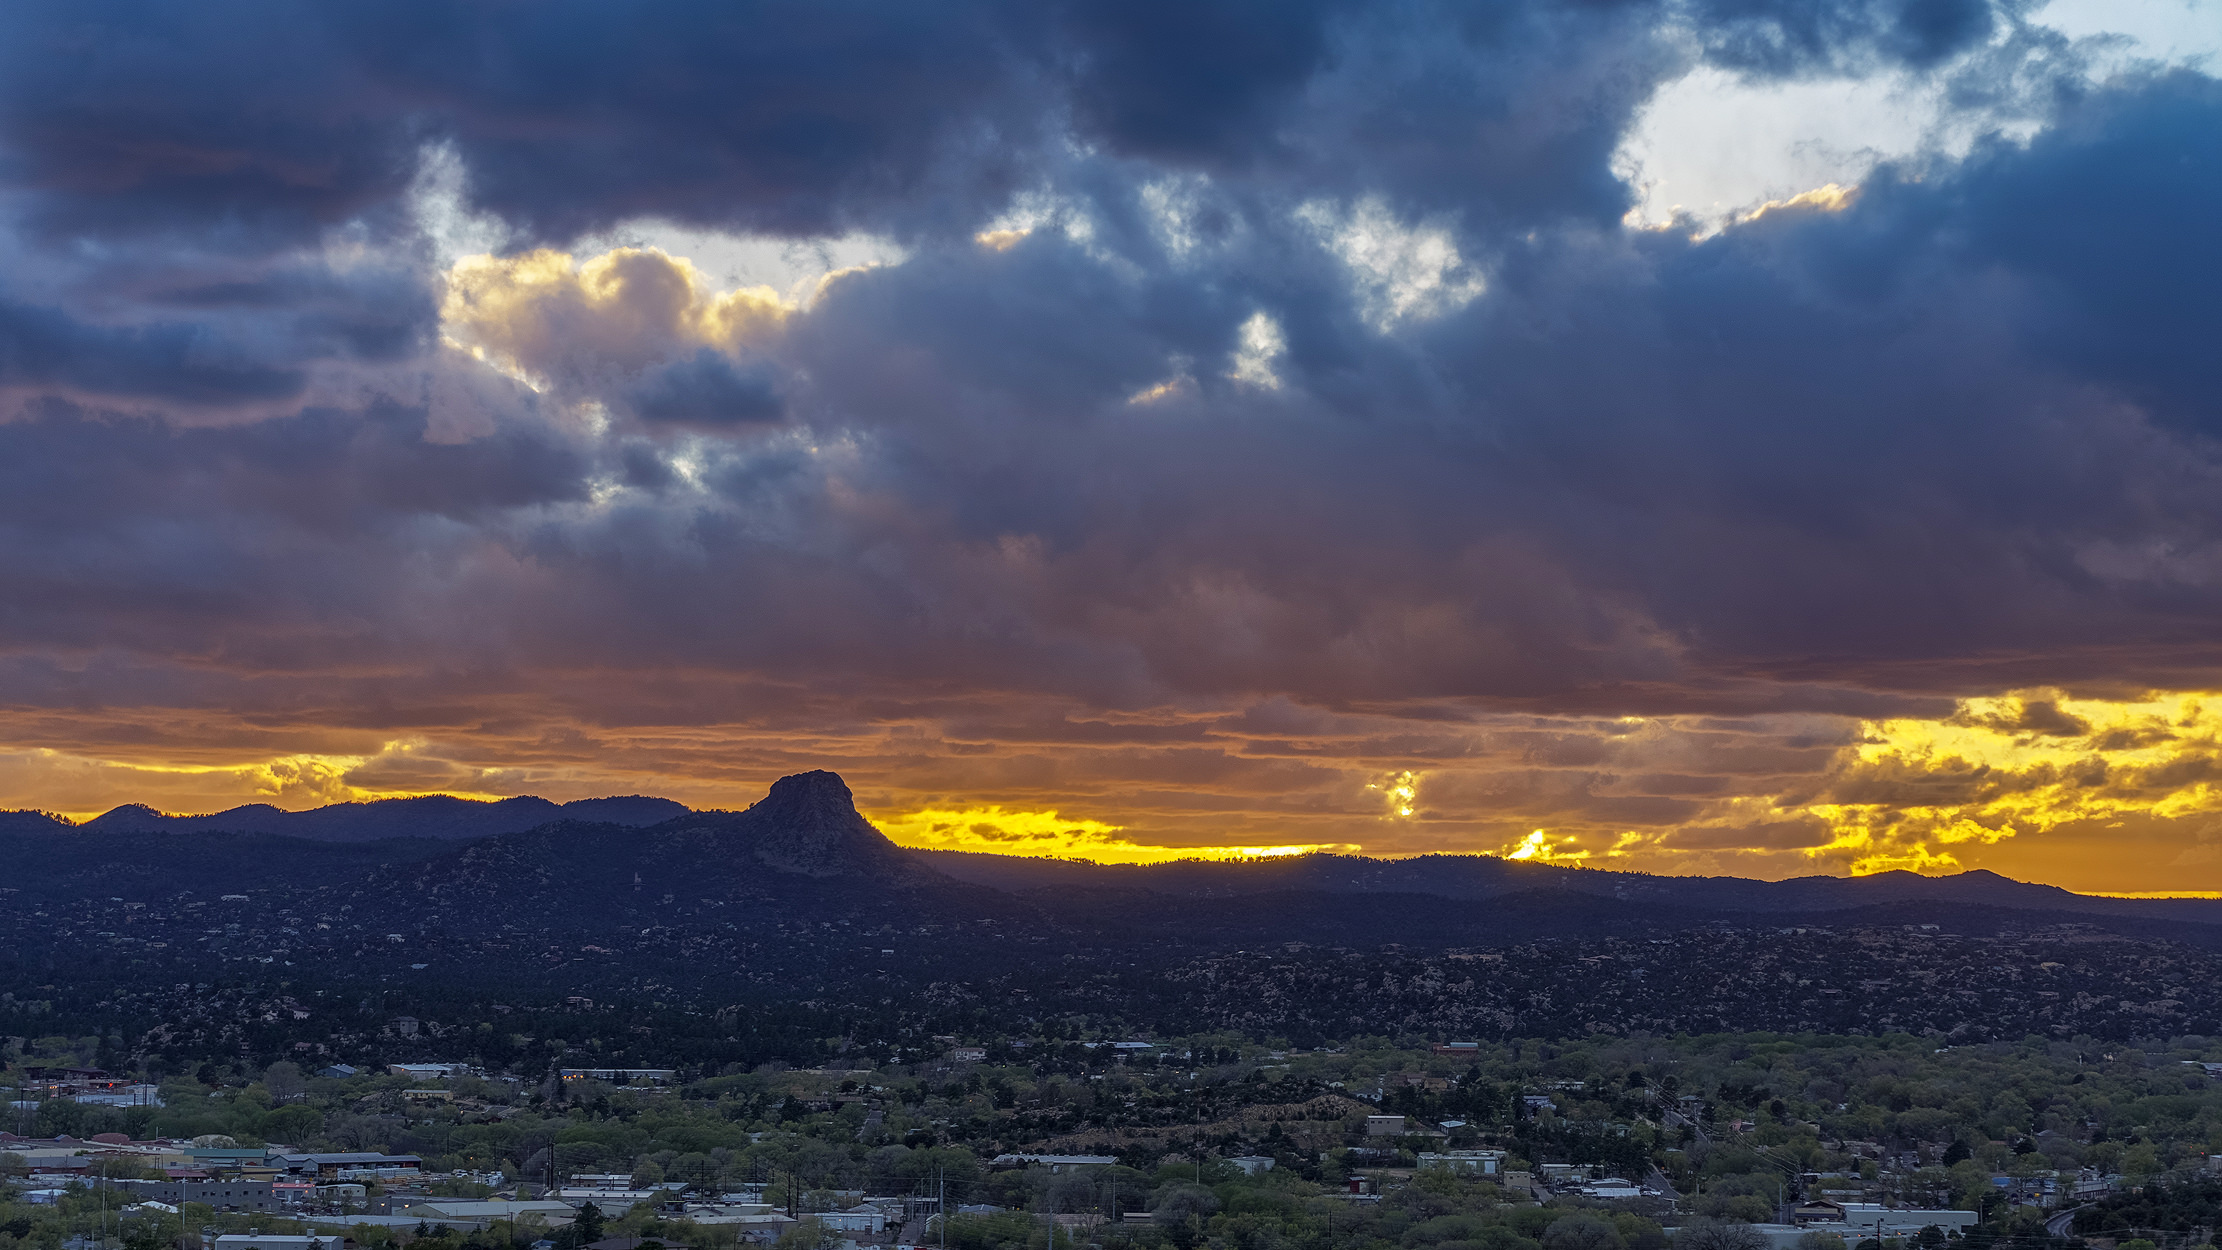 thumb butte at sunset